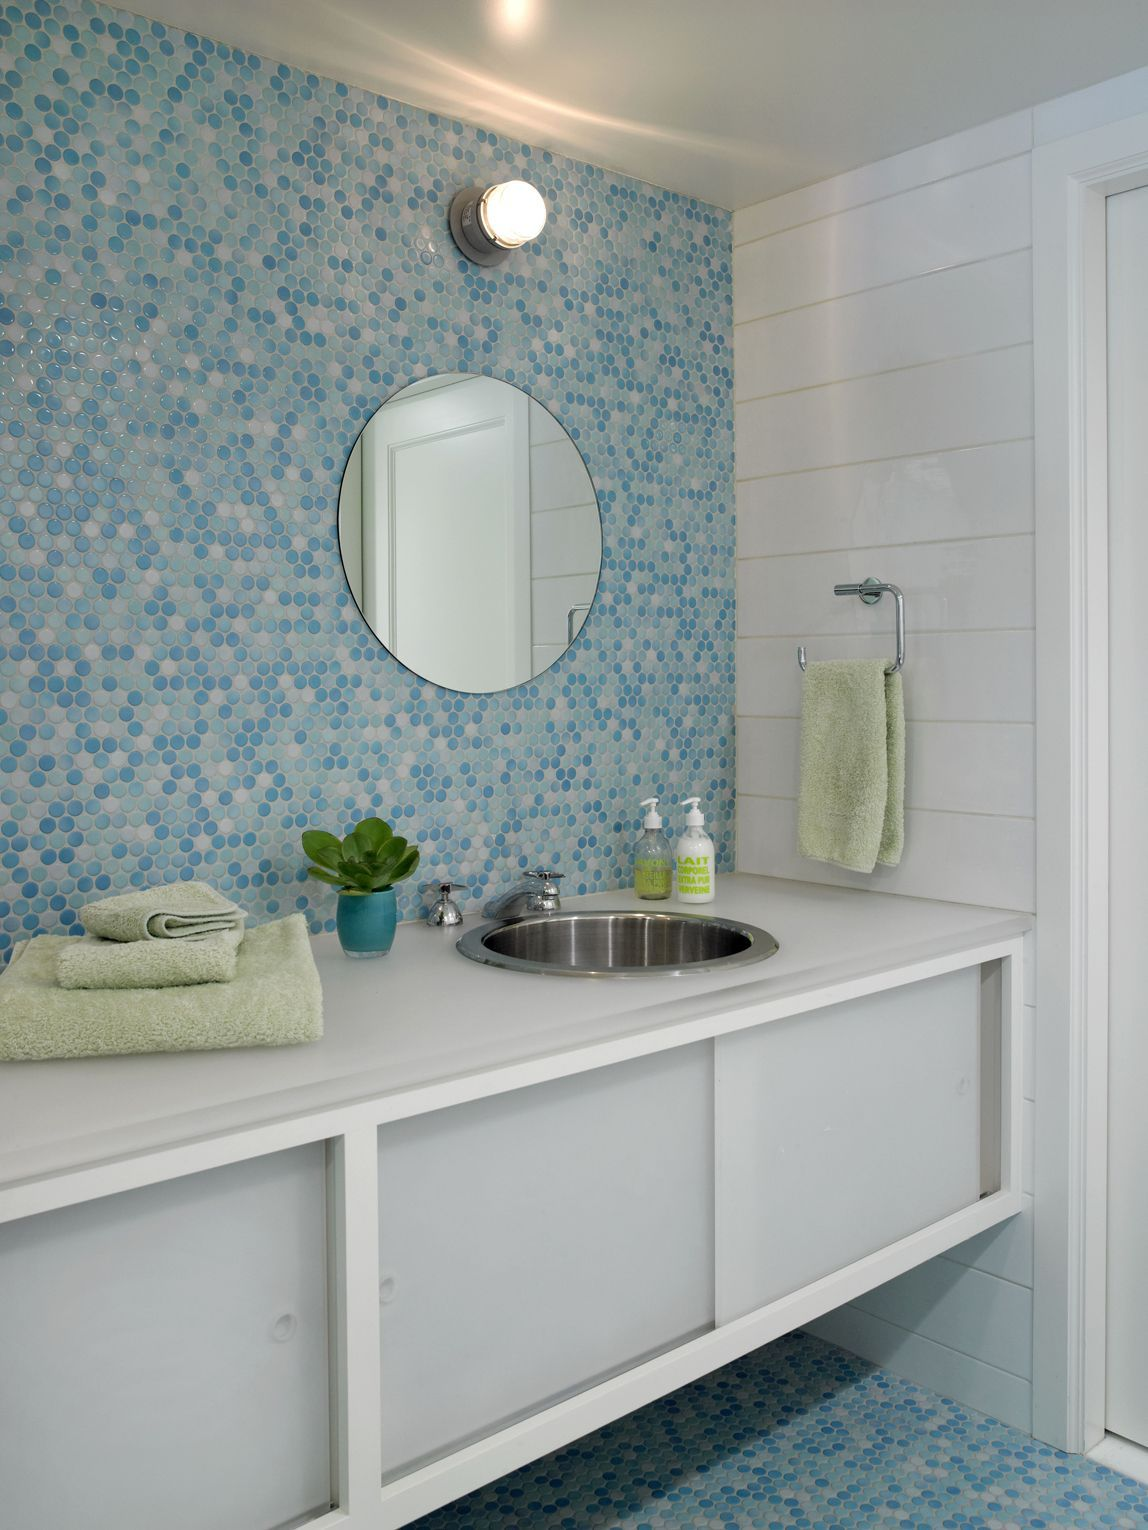 33 Unique Bathroom Tile Ideas | Pinterest | Blue tiles, Walls and ...